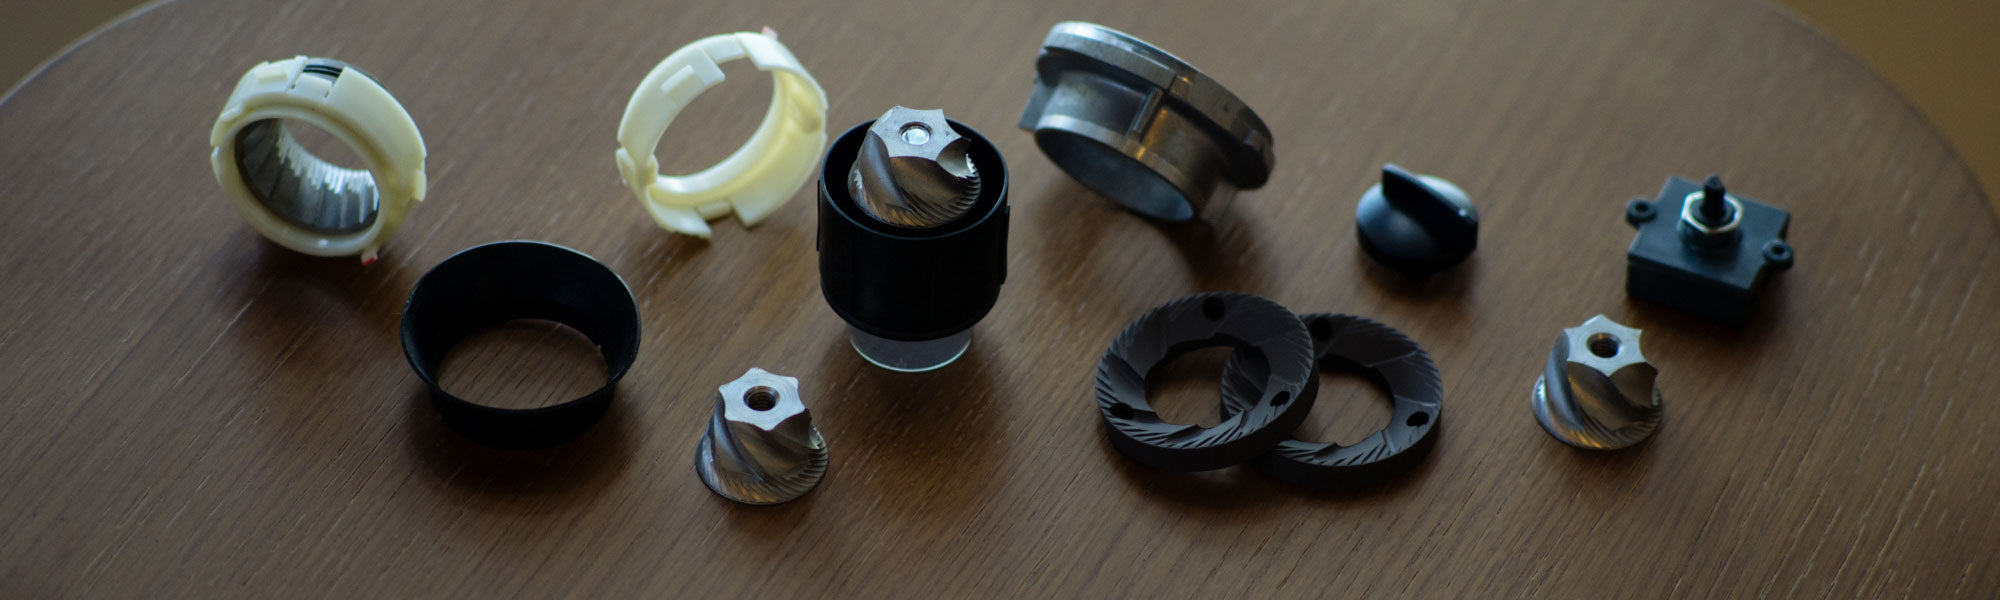 Grinder Parts and Accessories